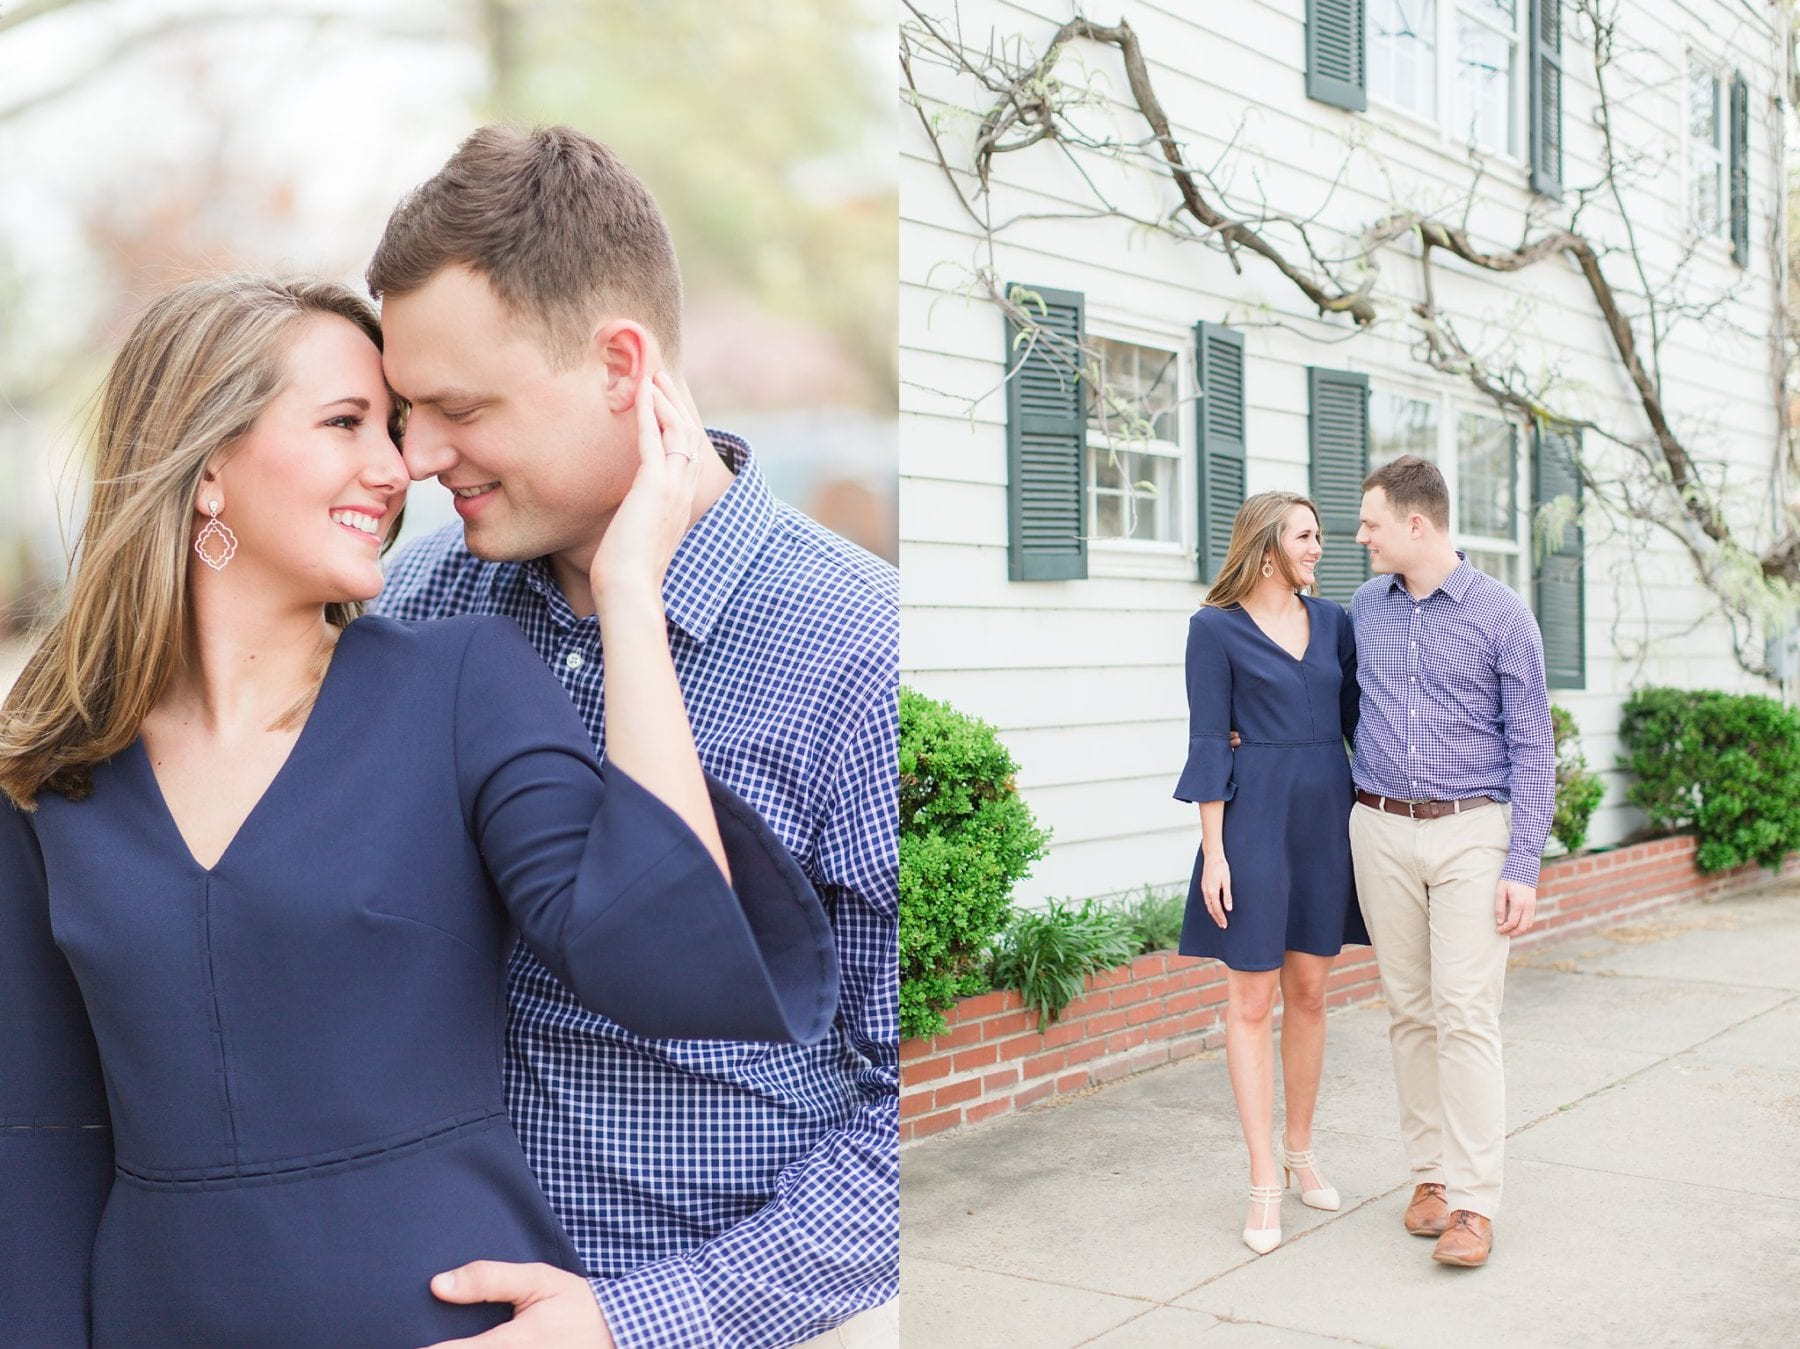 Springtime Old Town Alexandria Engagement Session Matt & Maxie Megan Kelsey Photography-156.jpg